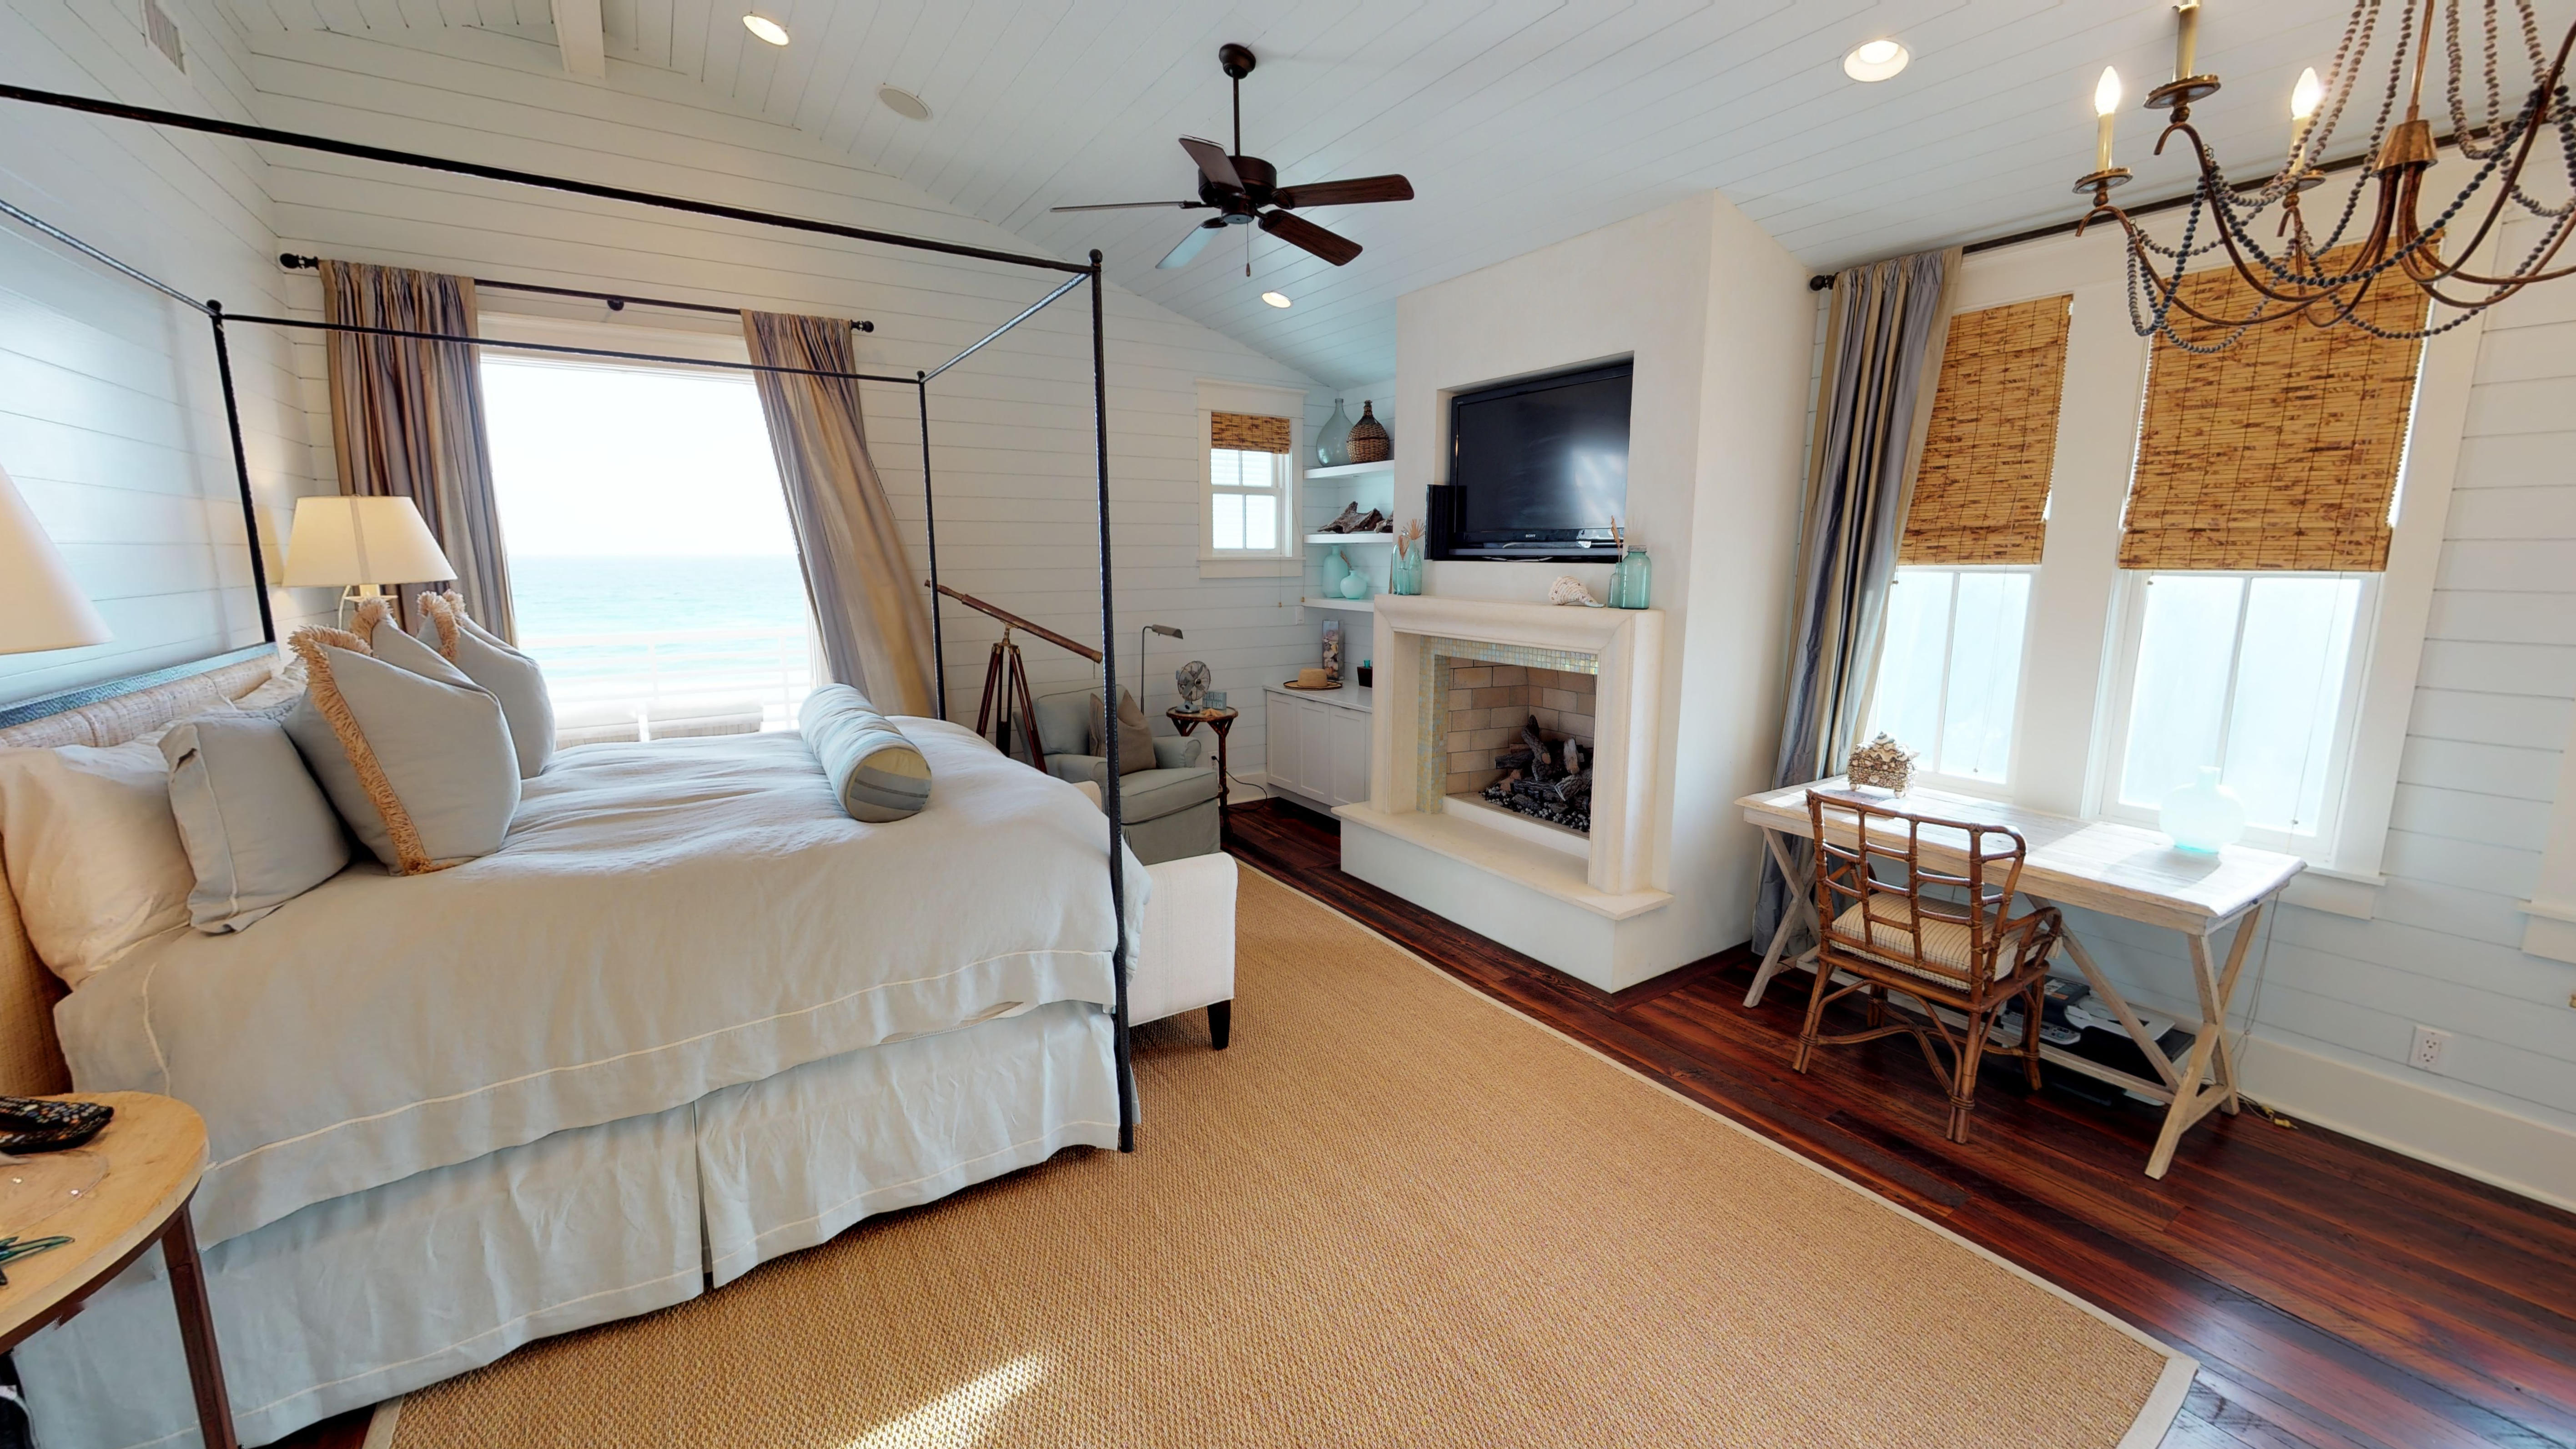 3rd floor Master Suite with a king sized bed